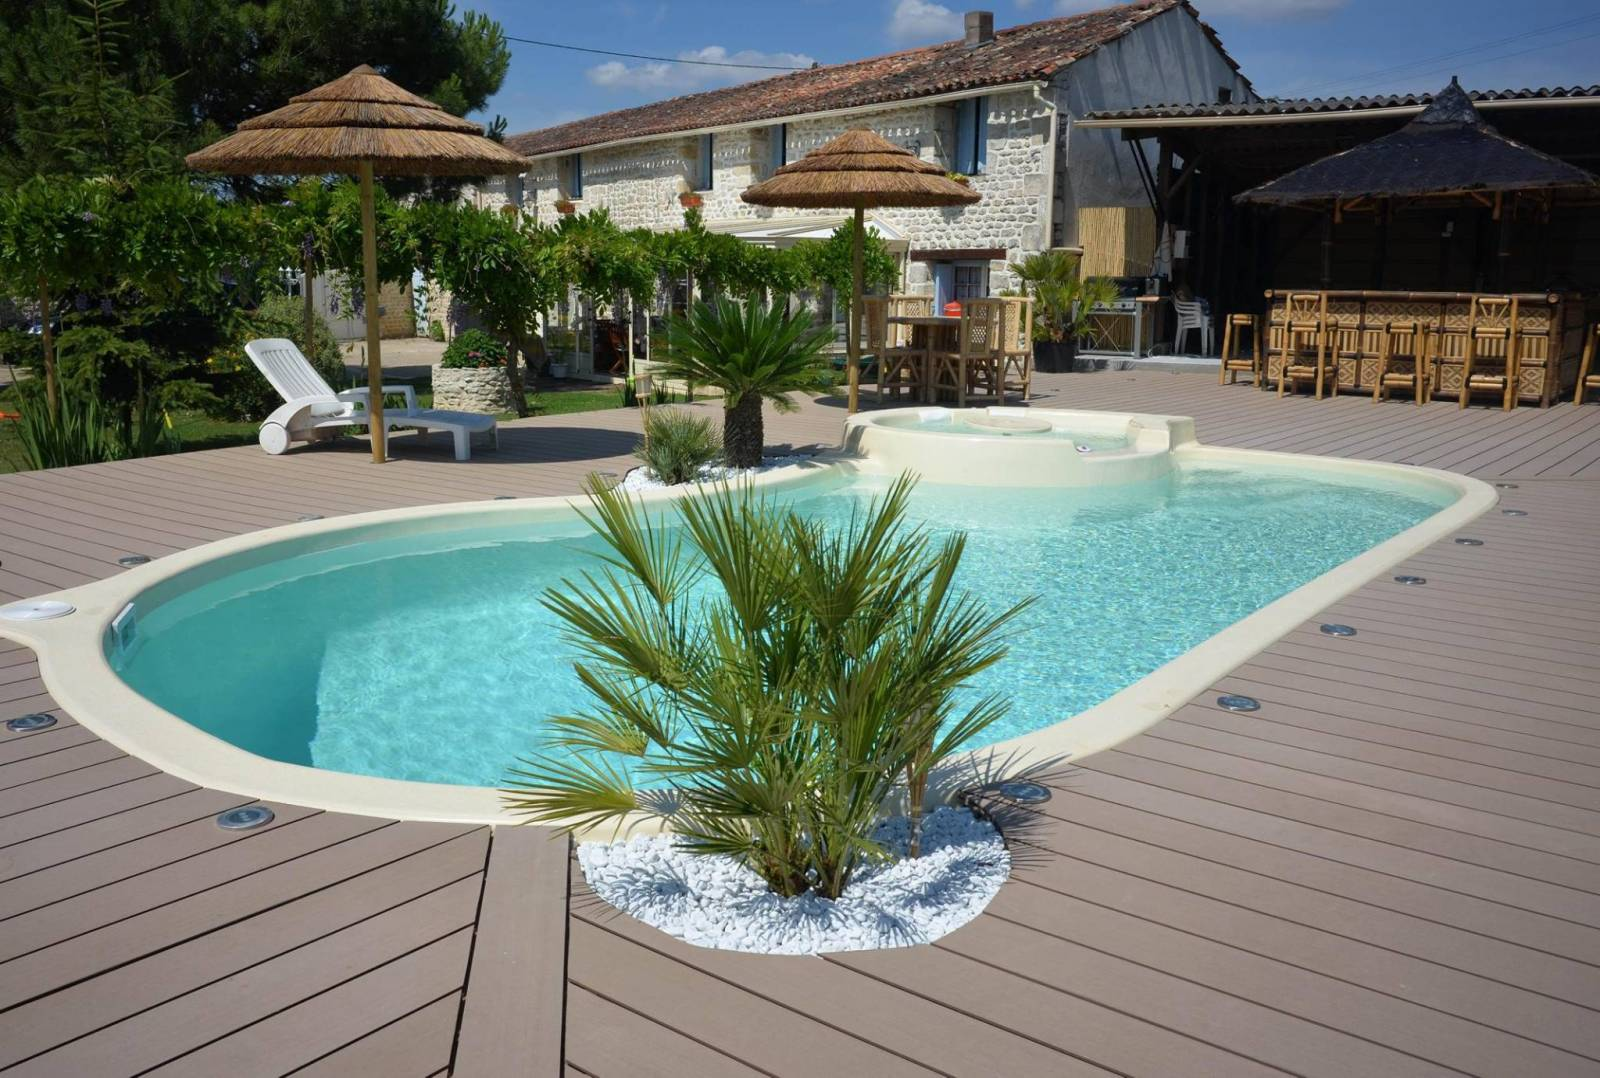 Fabricant de piscines coque montpellier freedom piscines for Meilleur piscine coque polyester